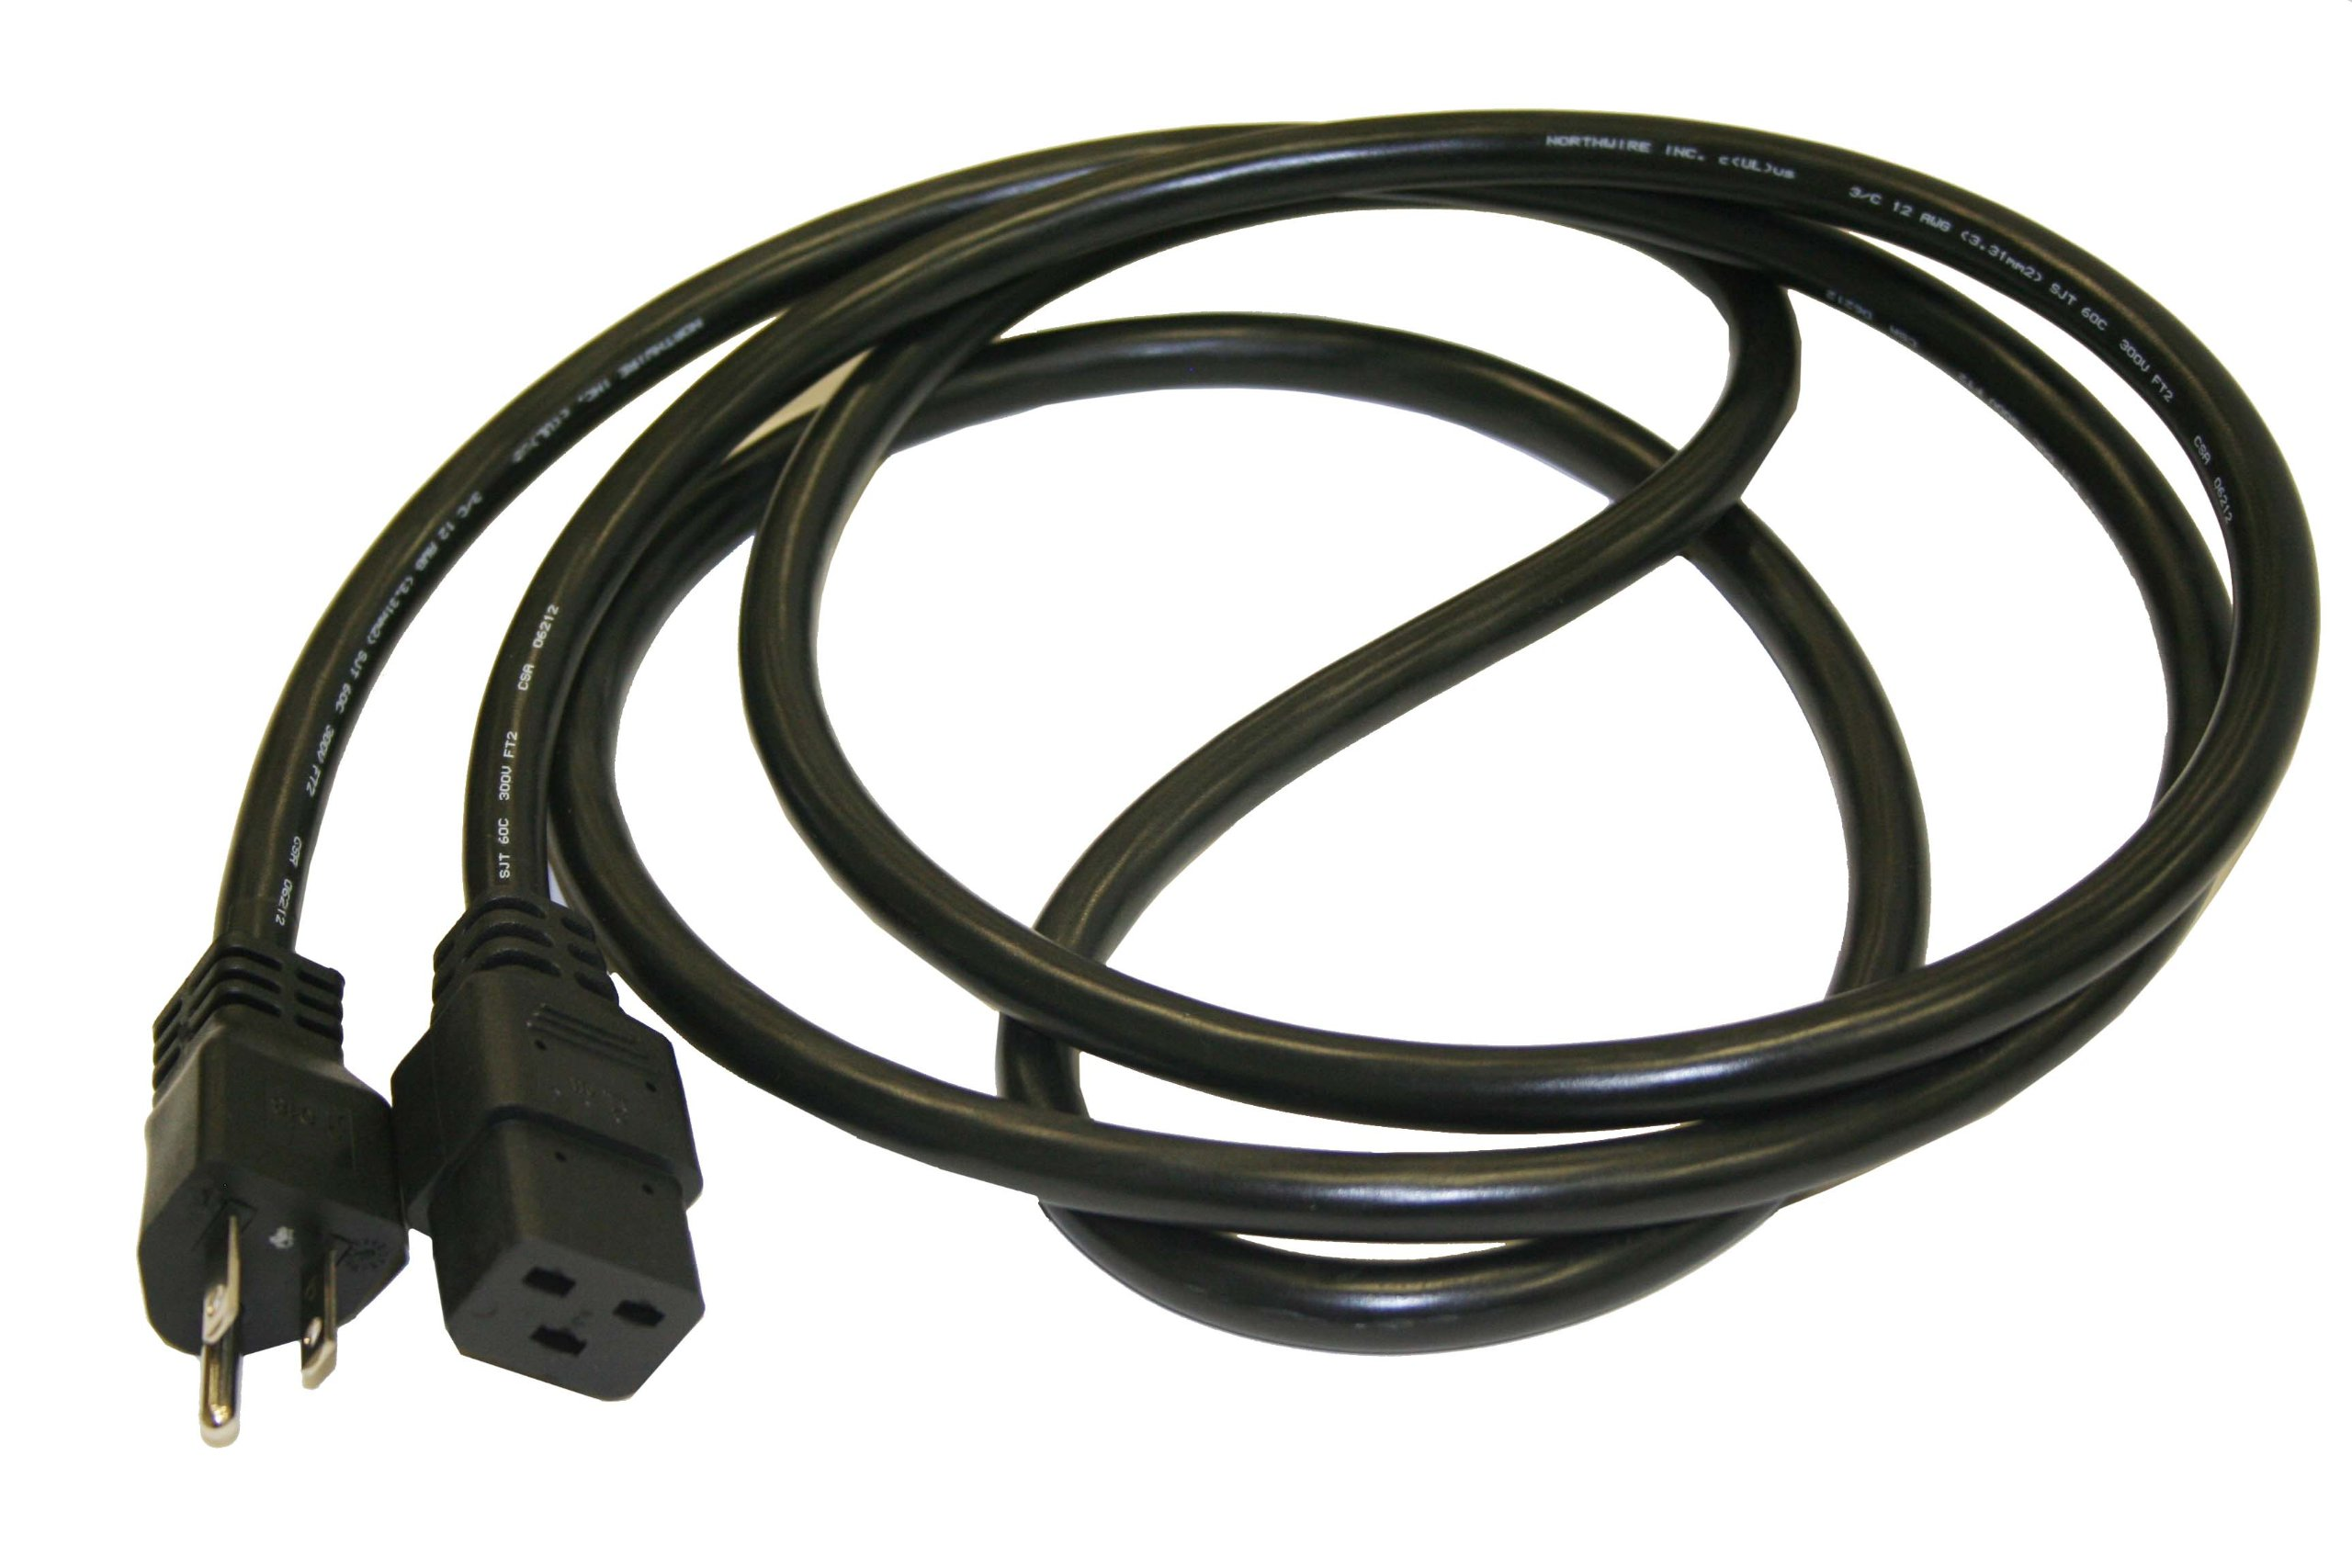 Interpower 71825110250 North American Cord Set, NEMA 5-15 Plug Type, IEC 60320 C19 Connector Type, Black Plug Color, Black Cable Color, 15A Amperage, 125VAC Voltage, 2.5m Length